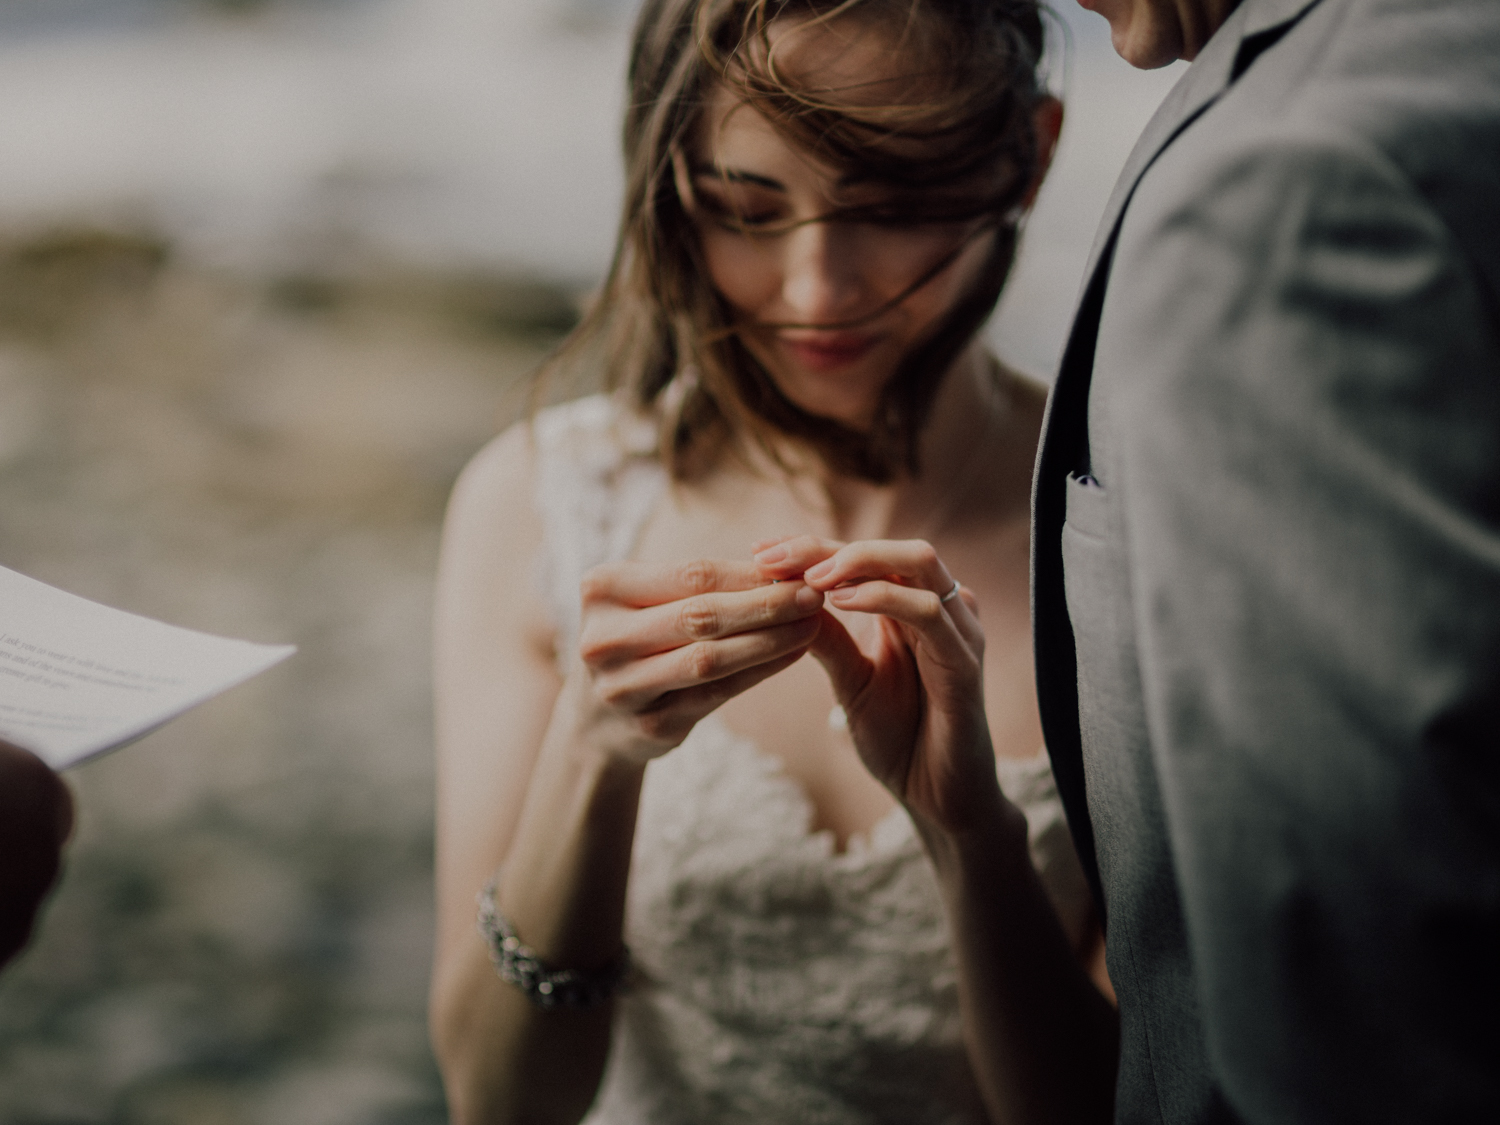 capyture-wedding-photographer-destination-elopement-isle-skye-scotland-284